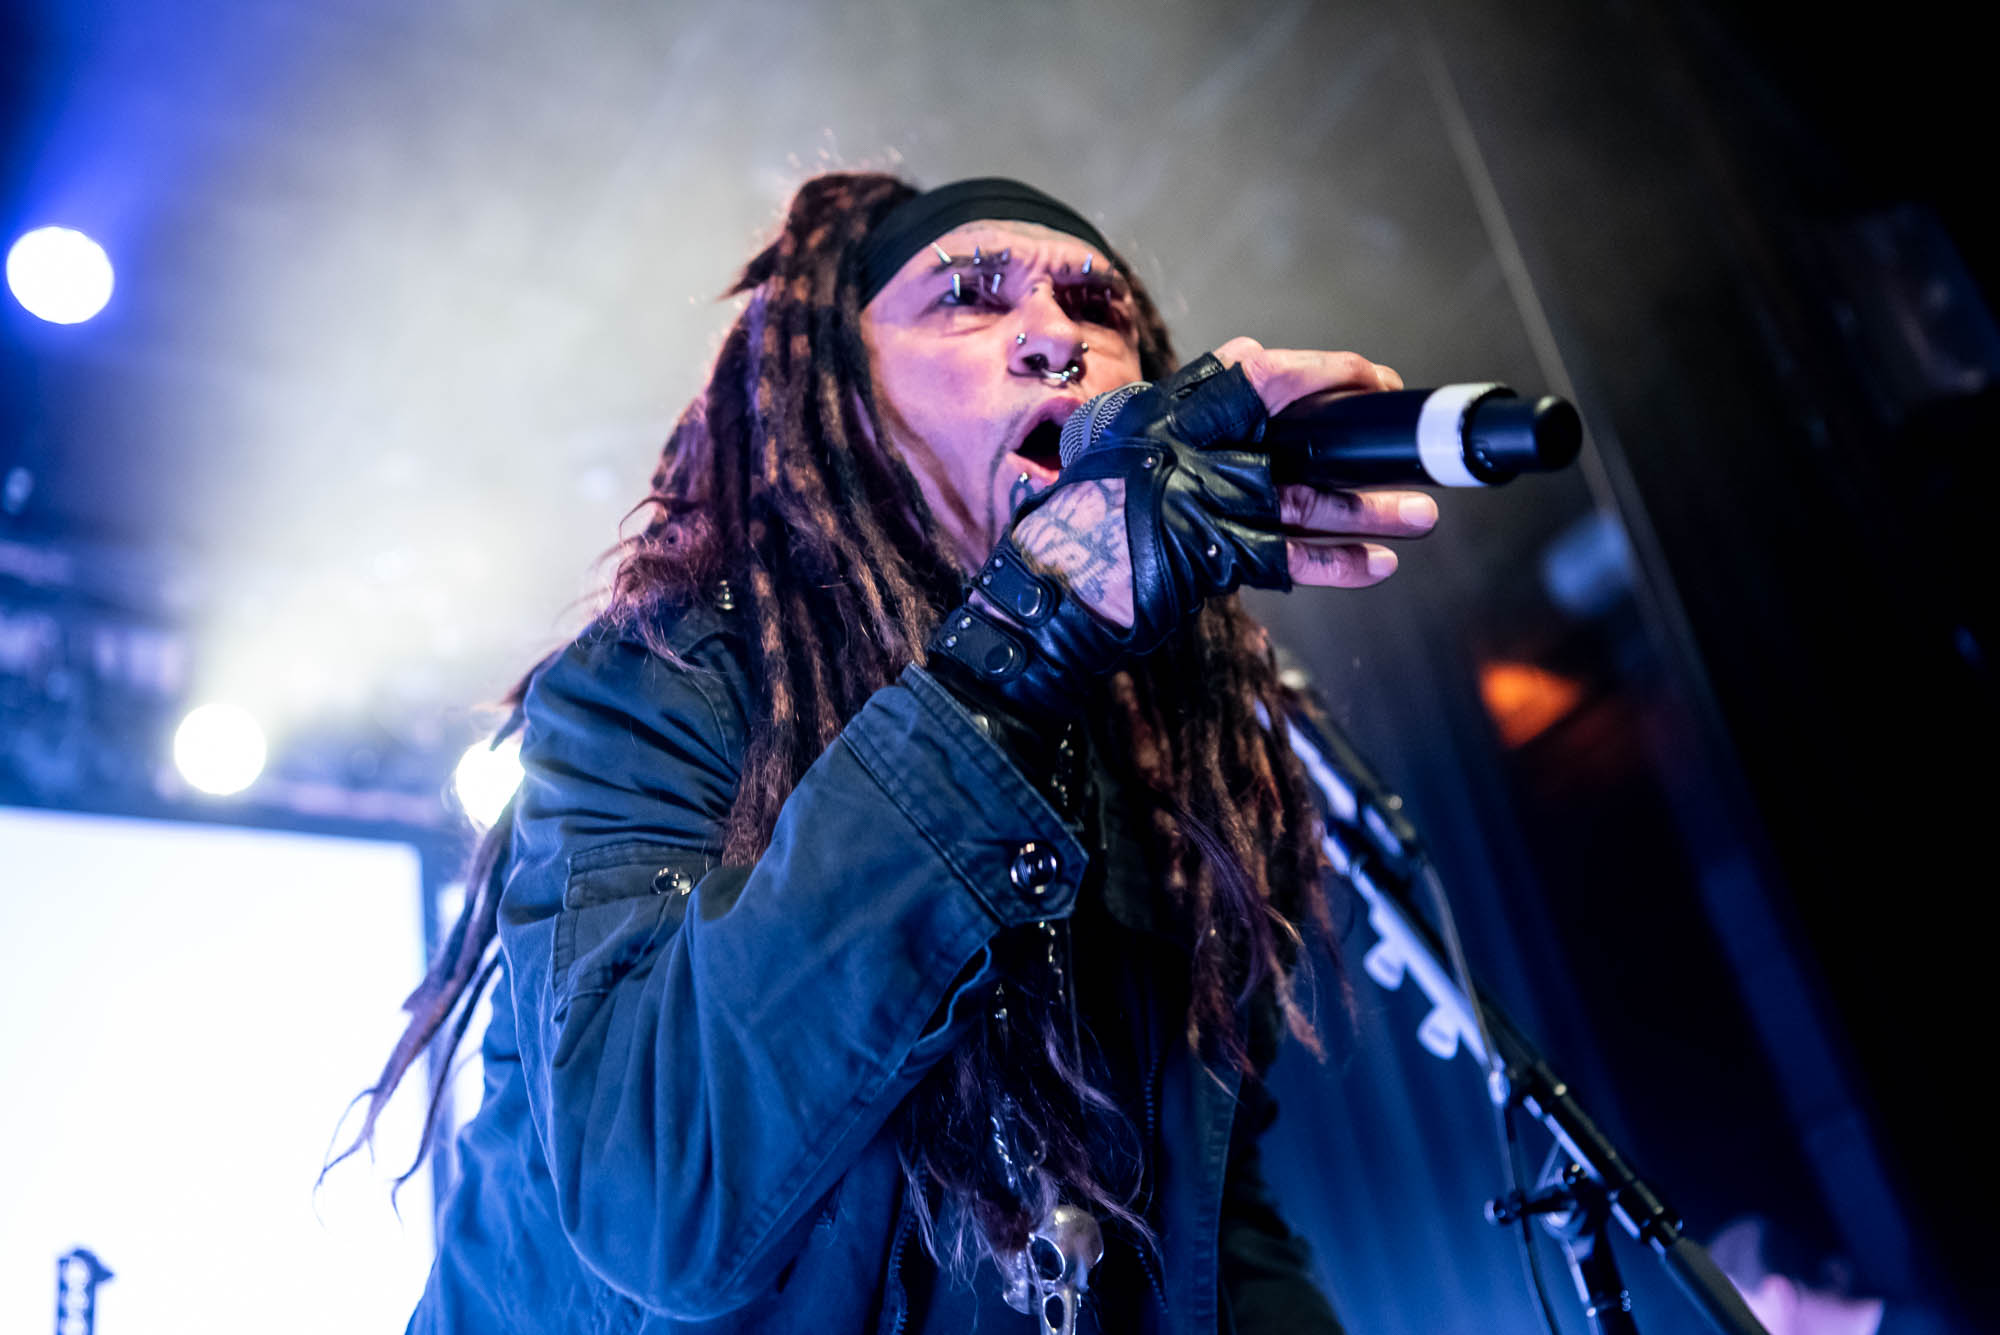 Ministry performing at Irving Plaza on Friday, December 7, 2018.